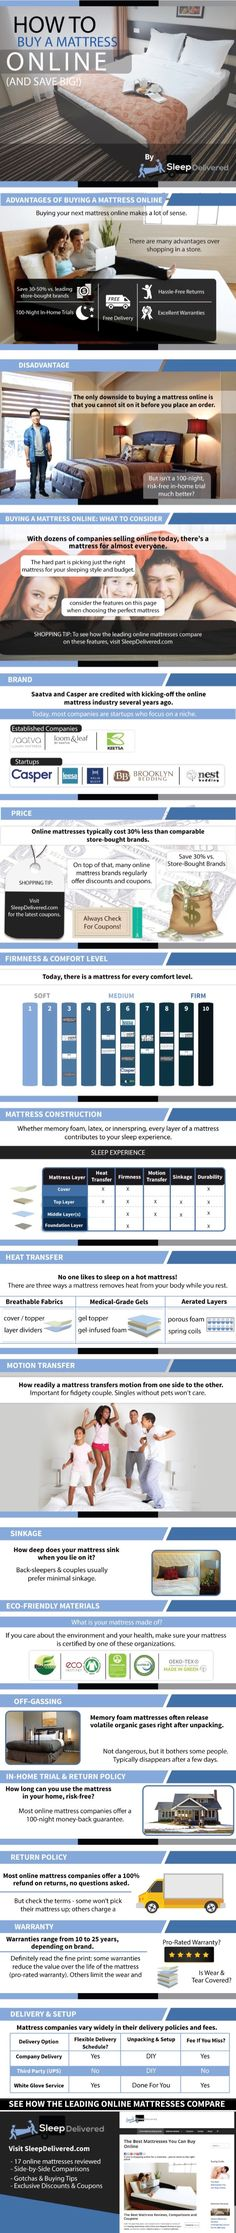 How To Buy a Mattress Online and Save BIG (Infographic)